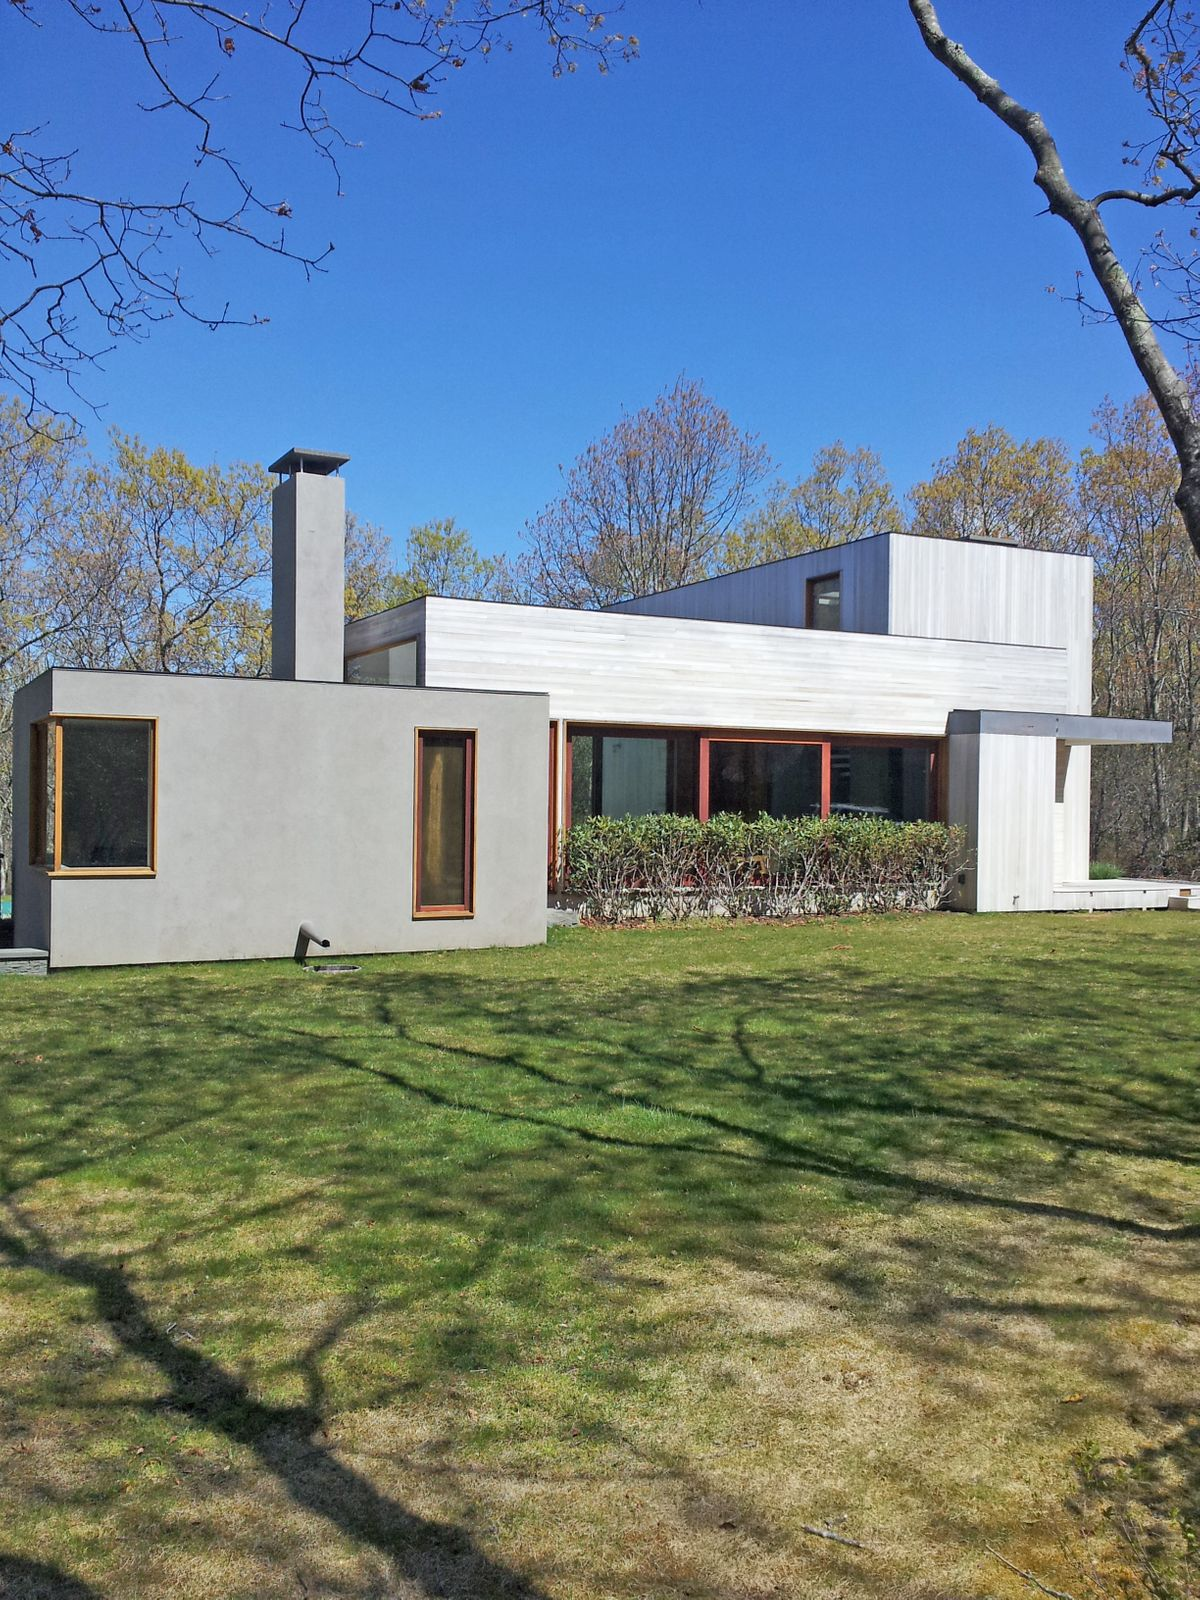 Sleek Modern- Sagaponack North, Sagaponack NY Single Family Home - Hamptons Real Estate